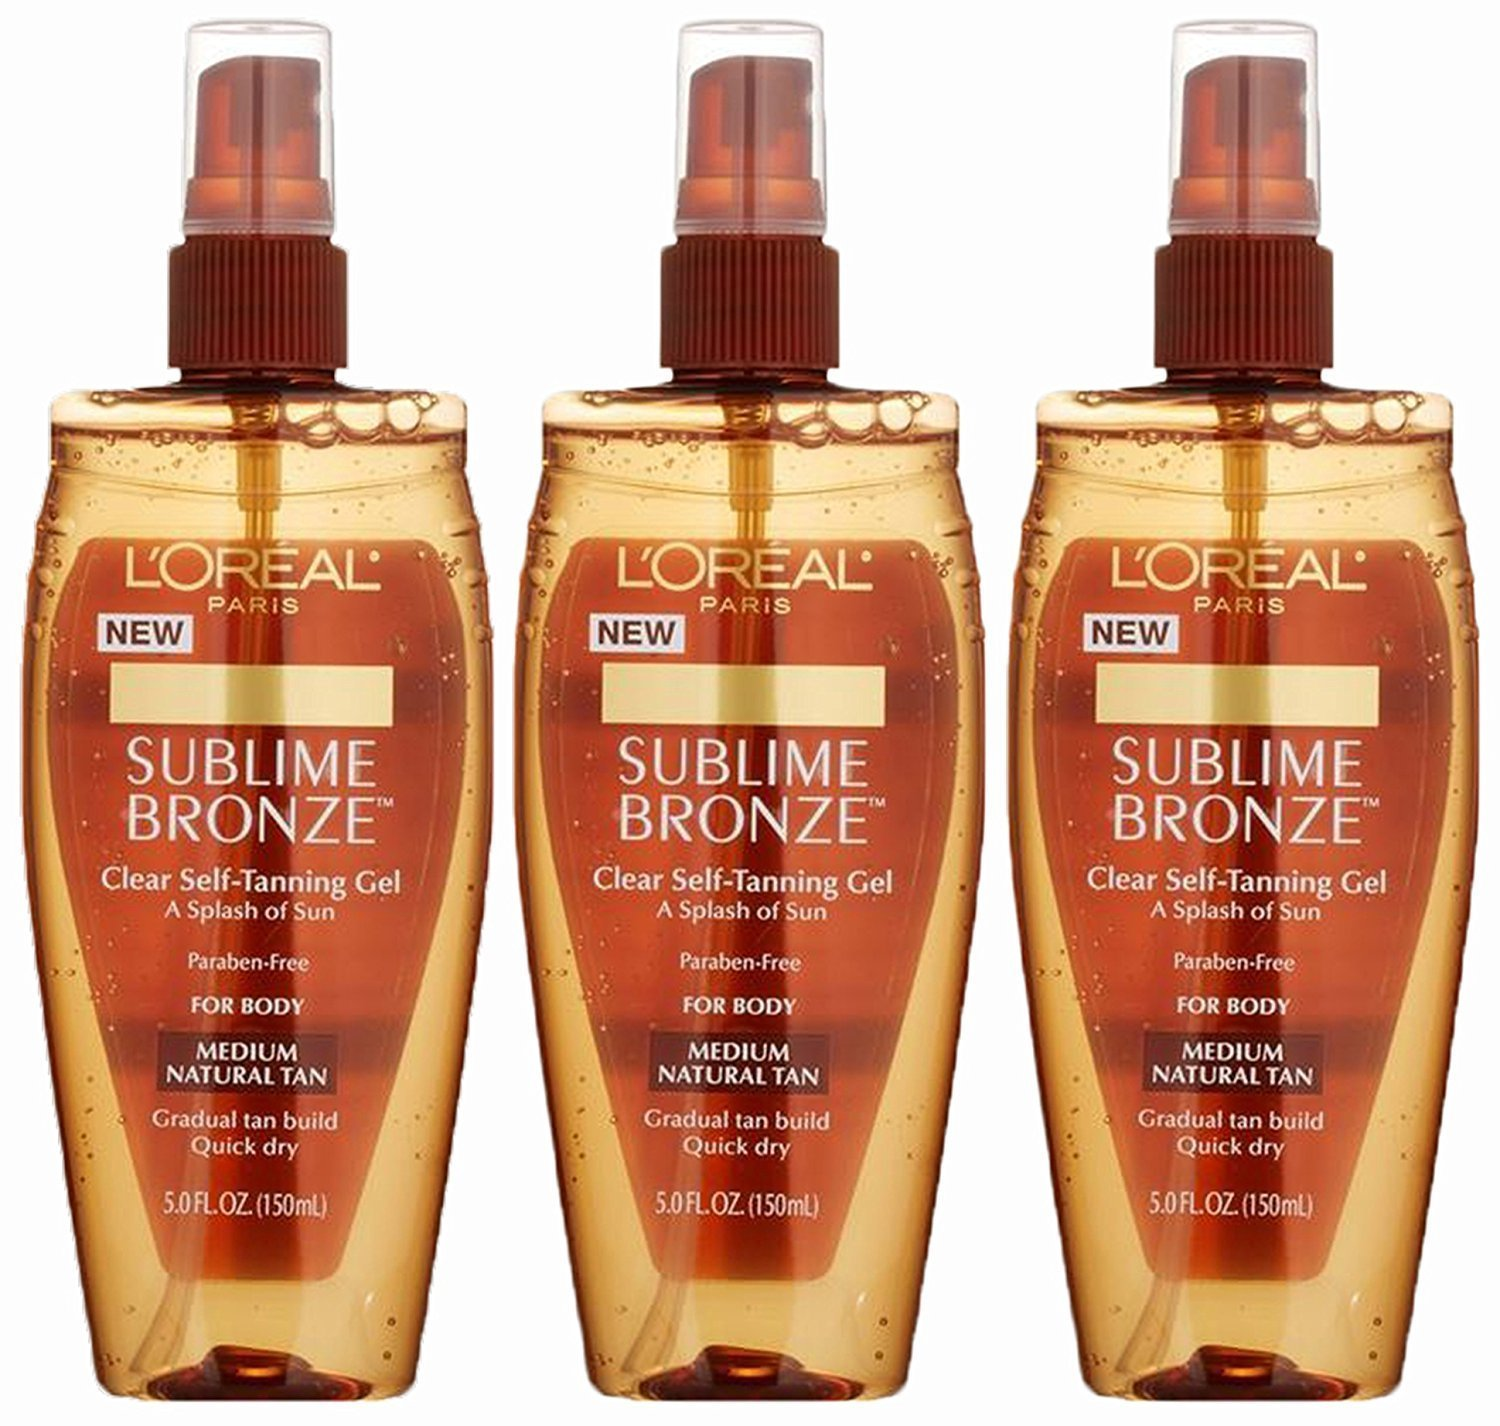 L'oreal Paris Sublime Bronze Clear Self-tanning Gel, 5.0 Ounce (Pack of 3)